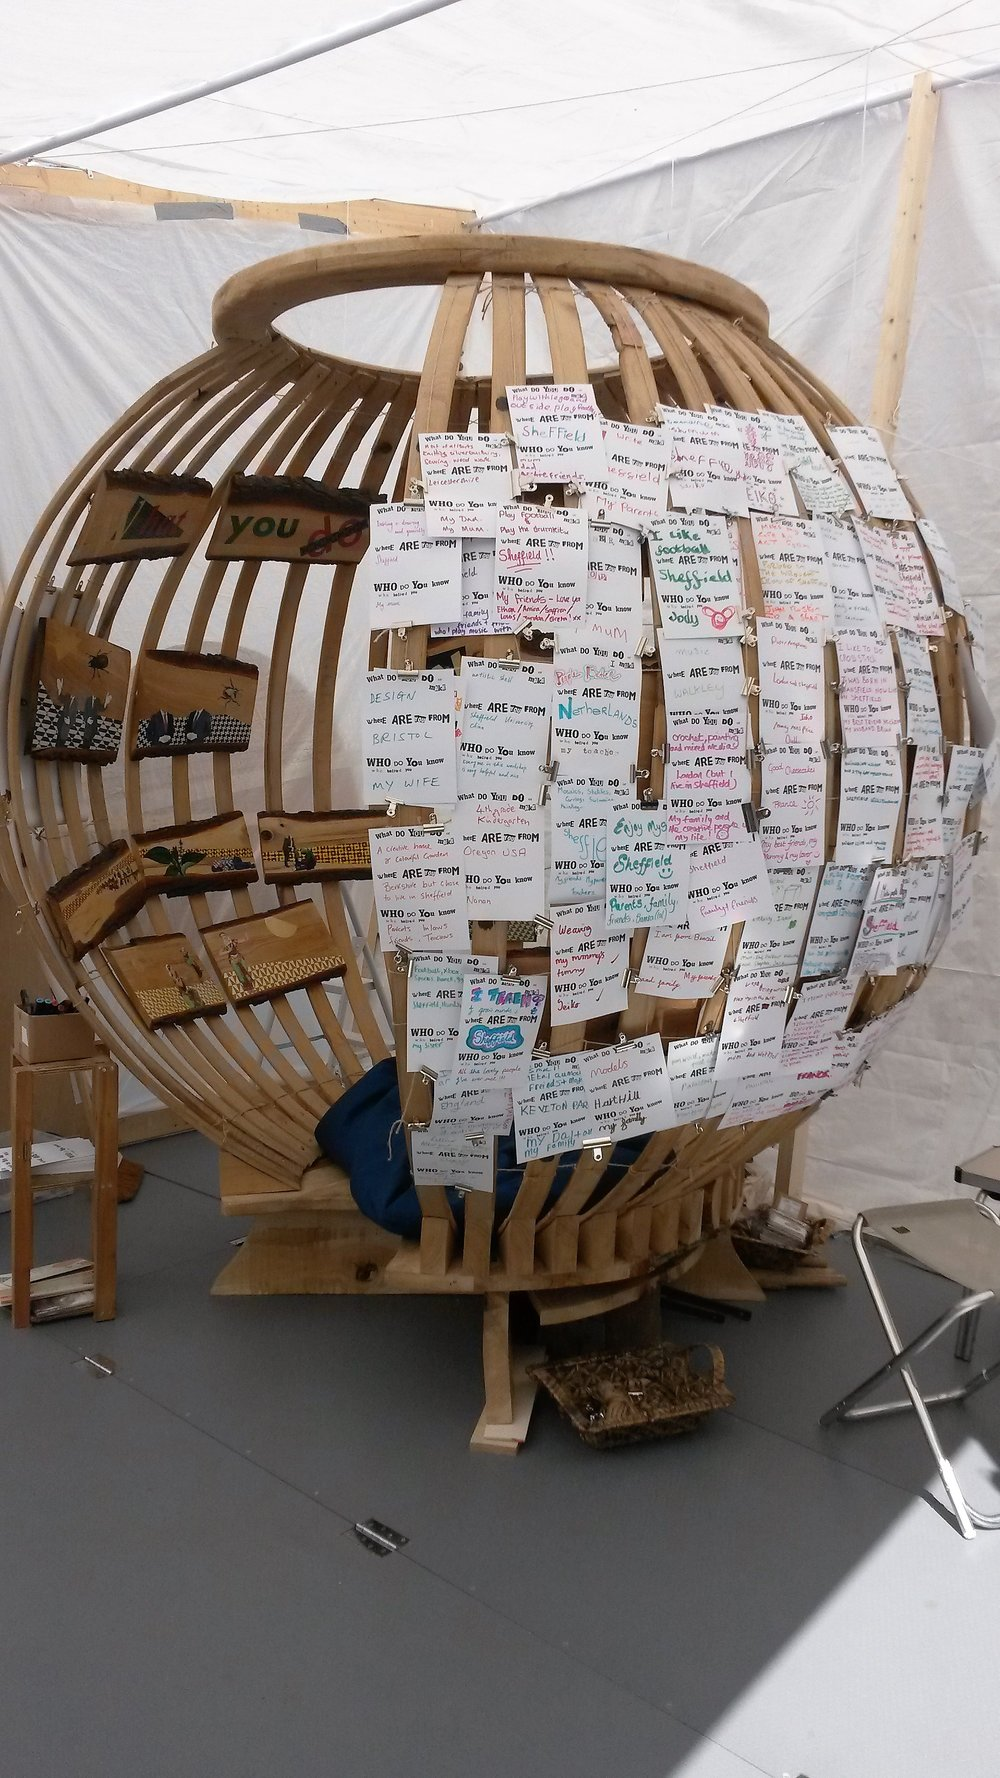 sculpture with comment cards.jpg